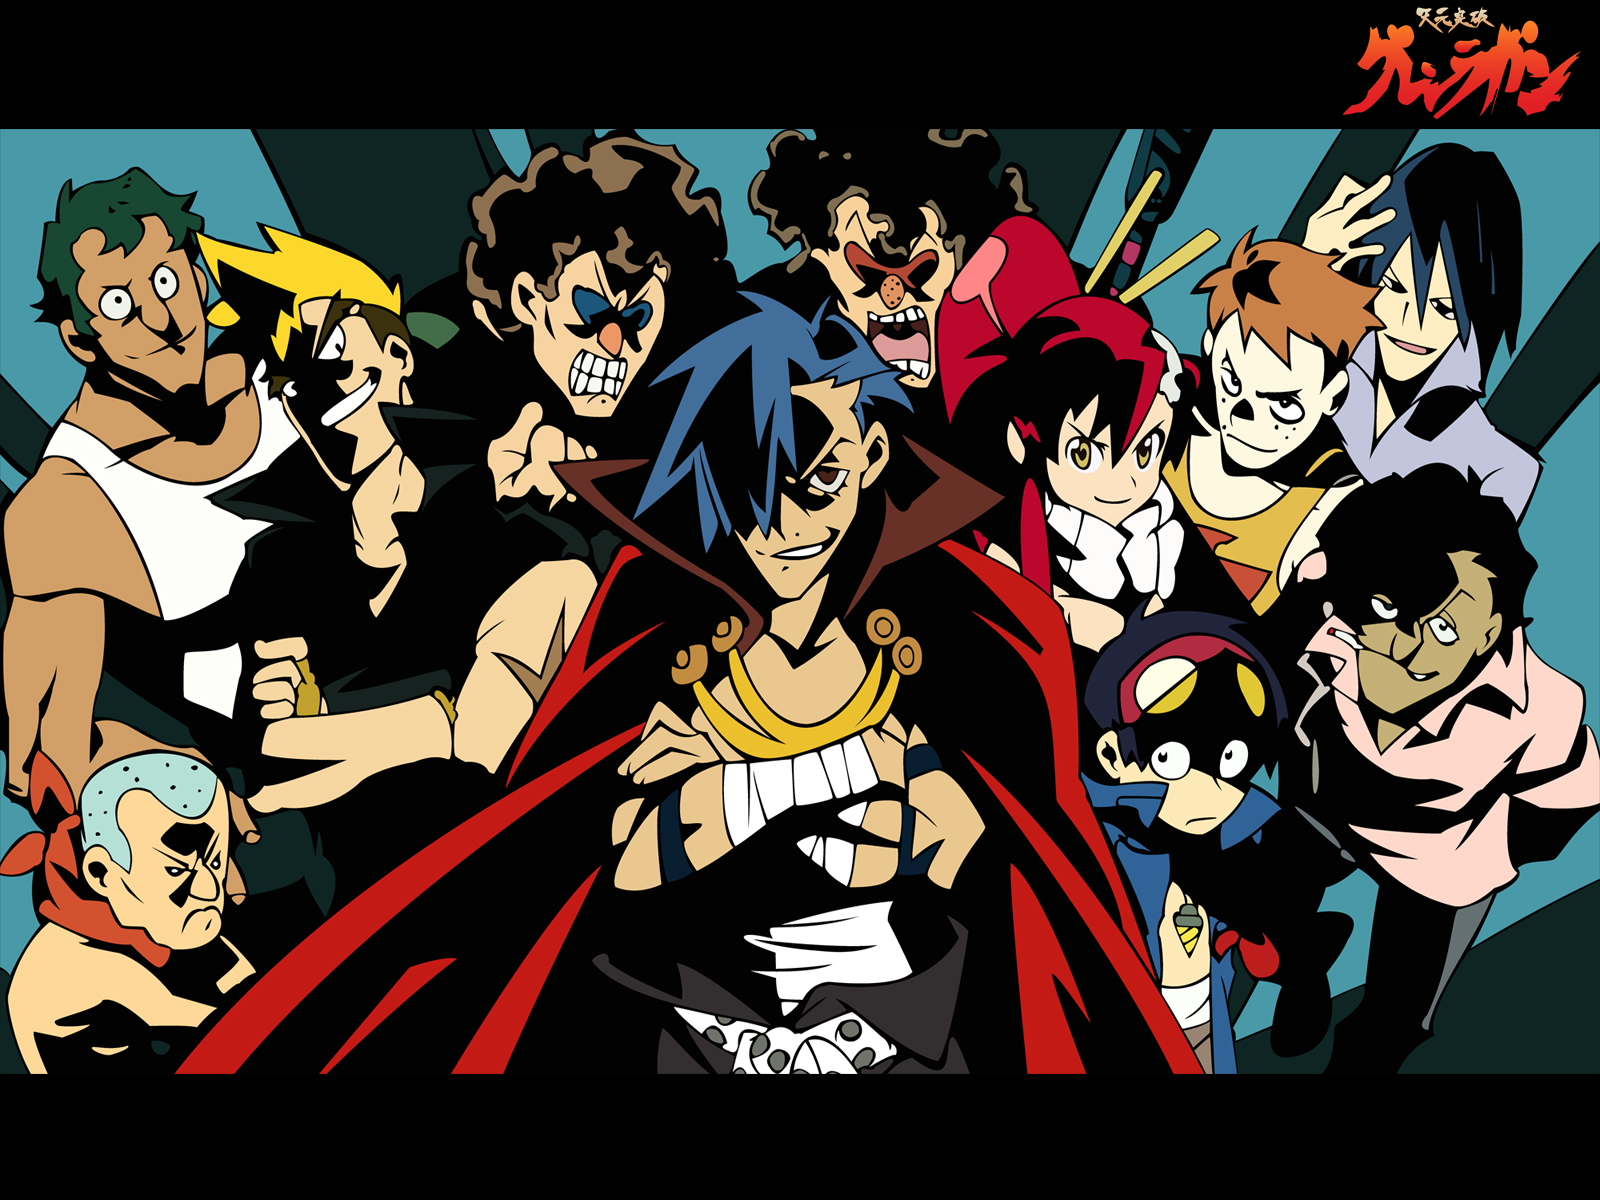 Tengen Toppa Gurren Lagann Wallpaper. Tagged tengen on x anime wallpaper